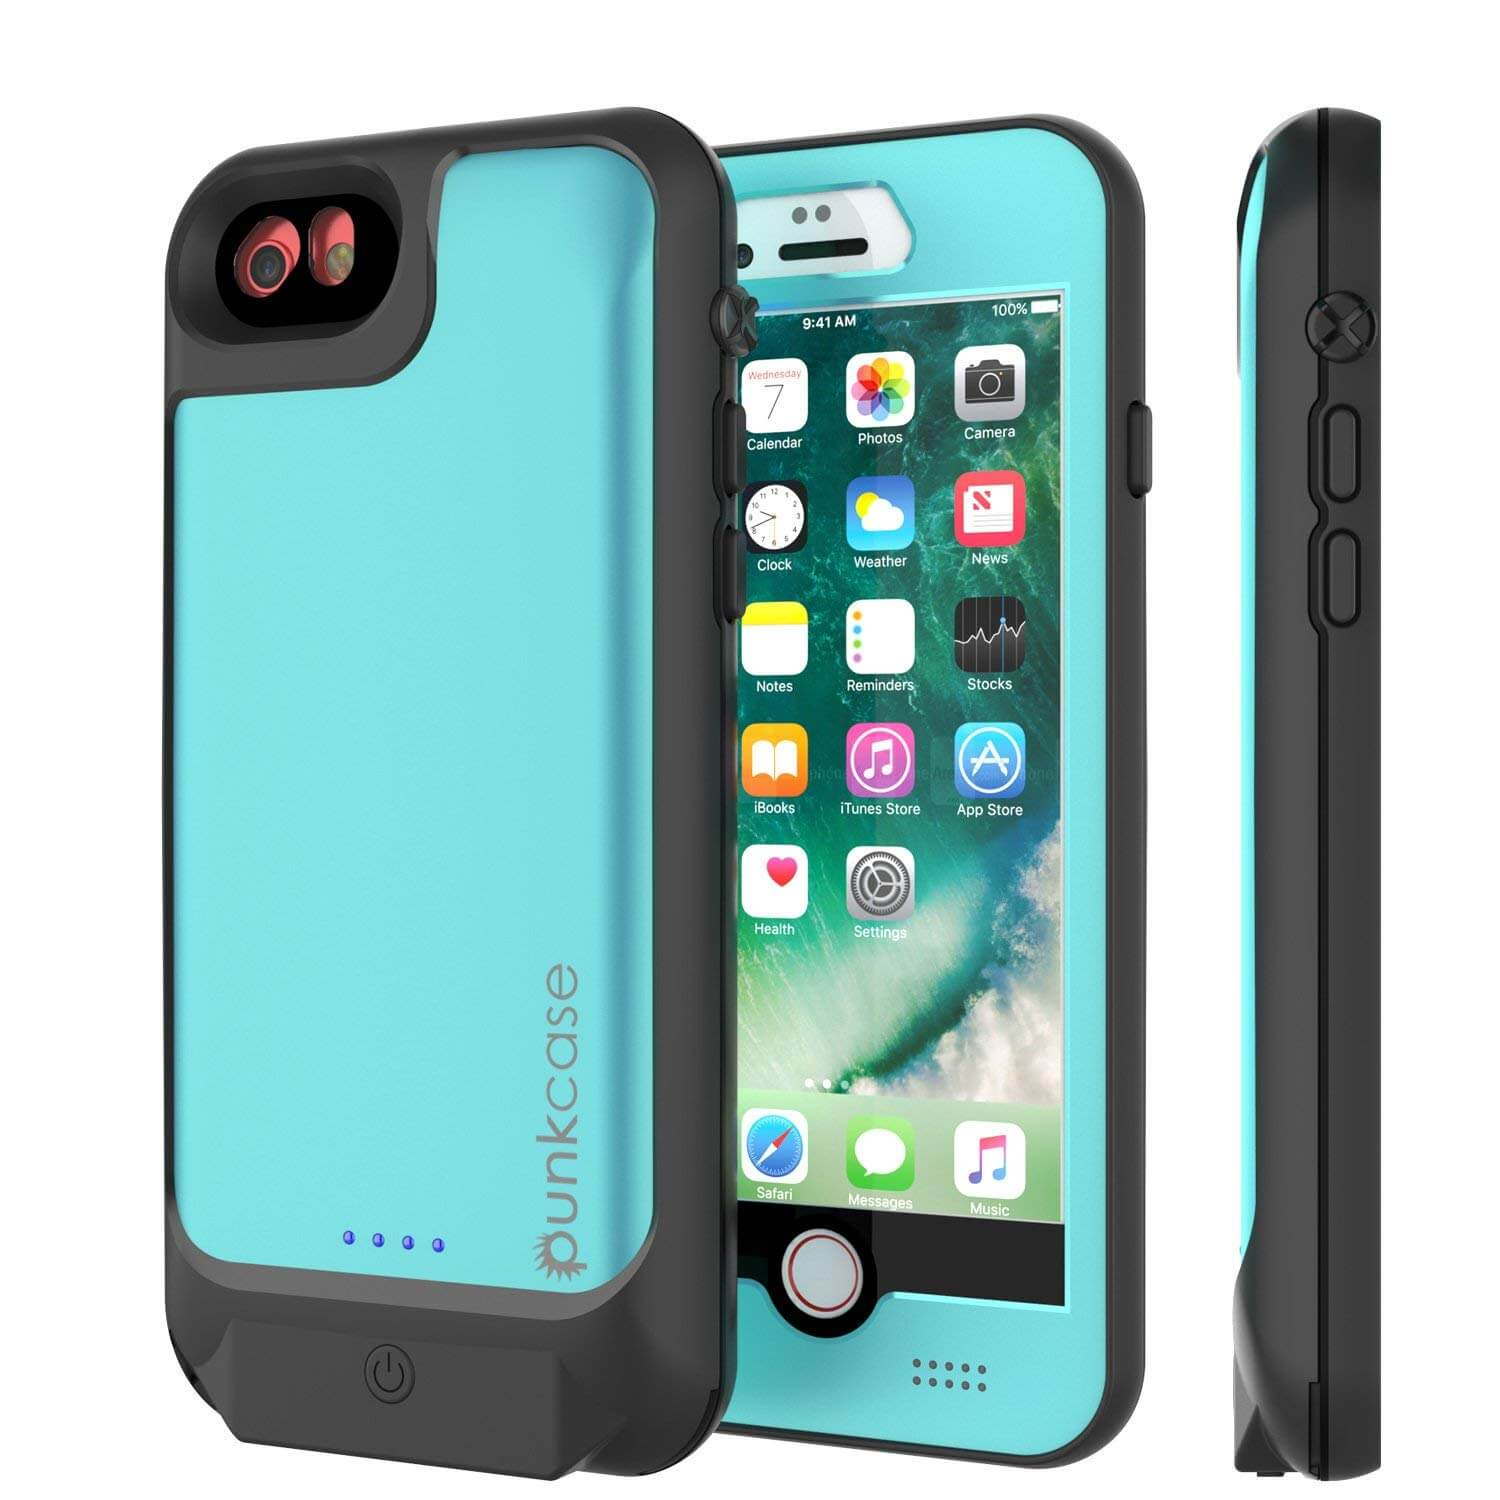 iPhone 6/6s Battery Case PunkJuice  - Waterproof Slim Portable Power Juice Bank with 2750mAh High Capacity (Teal)